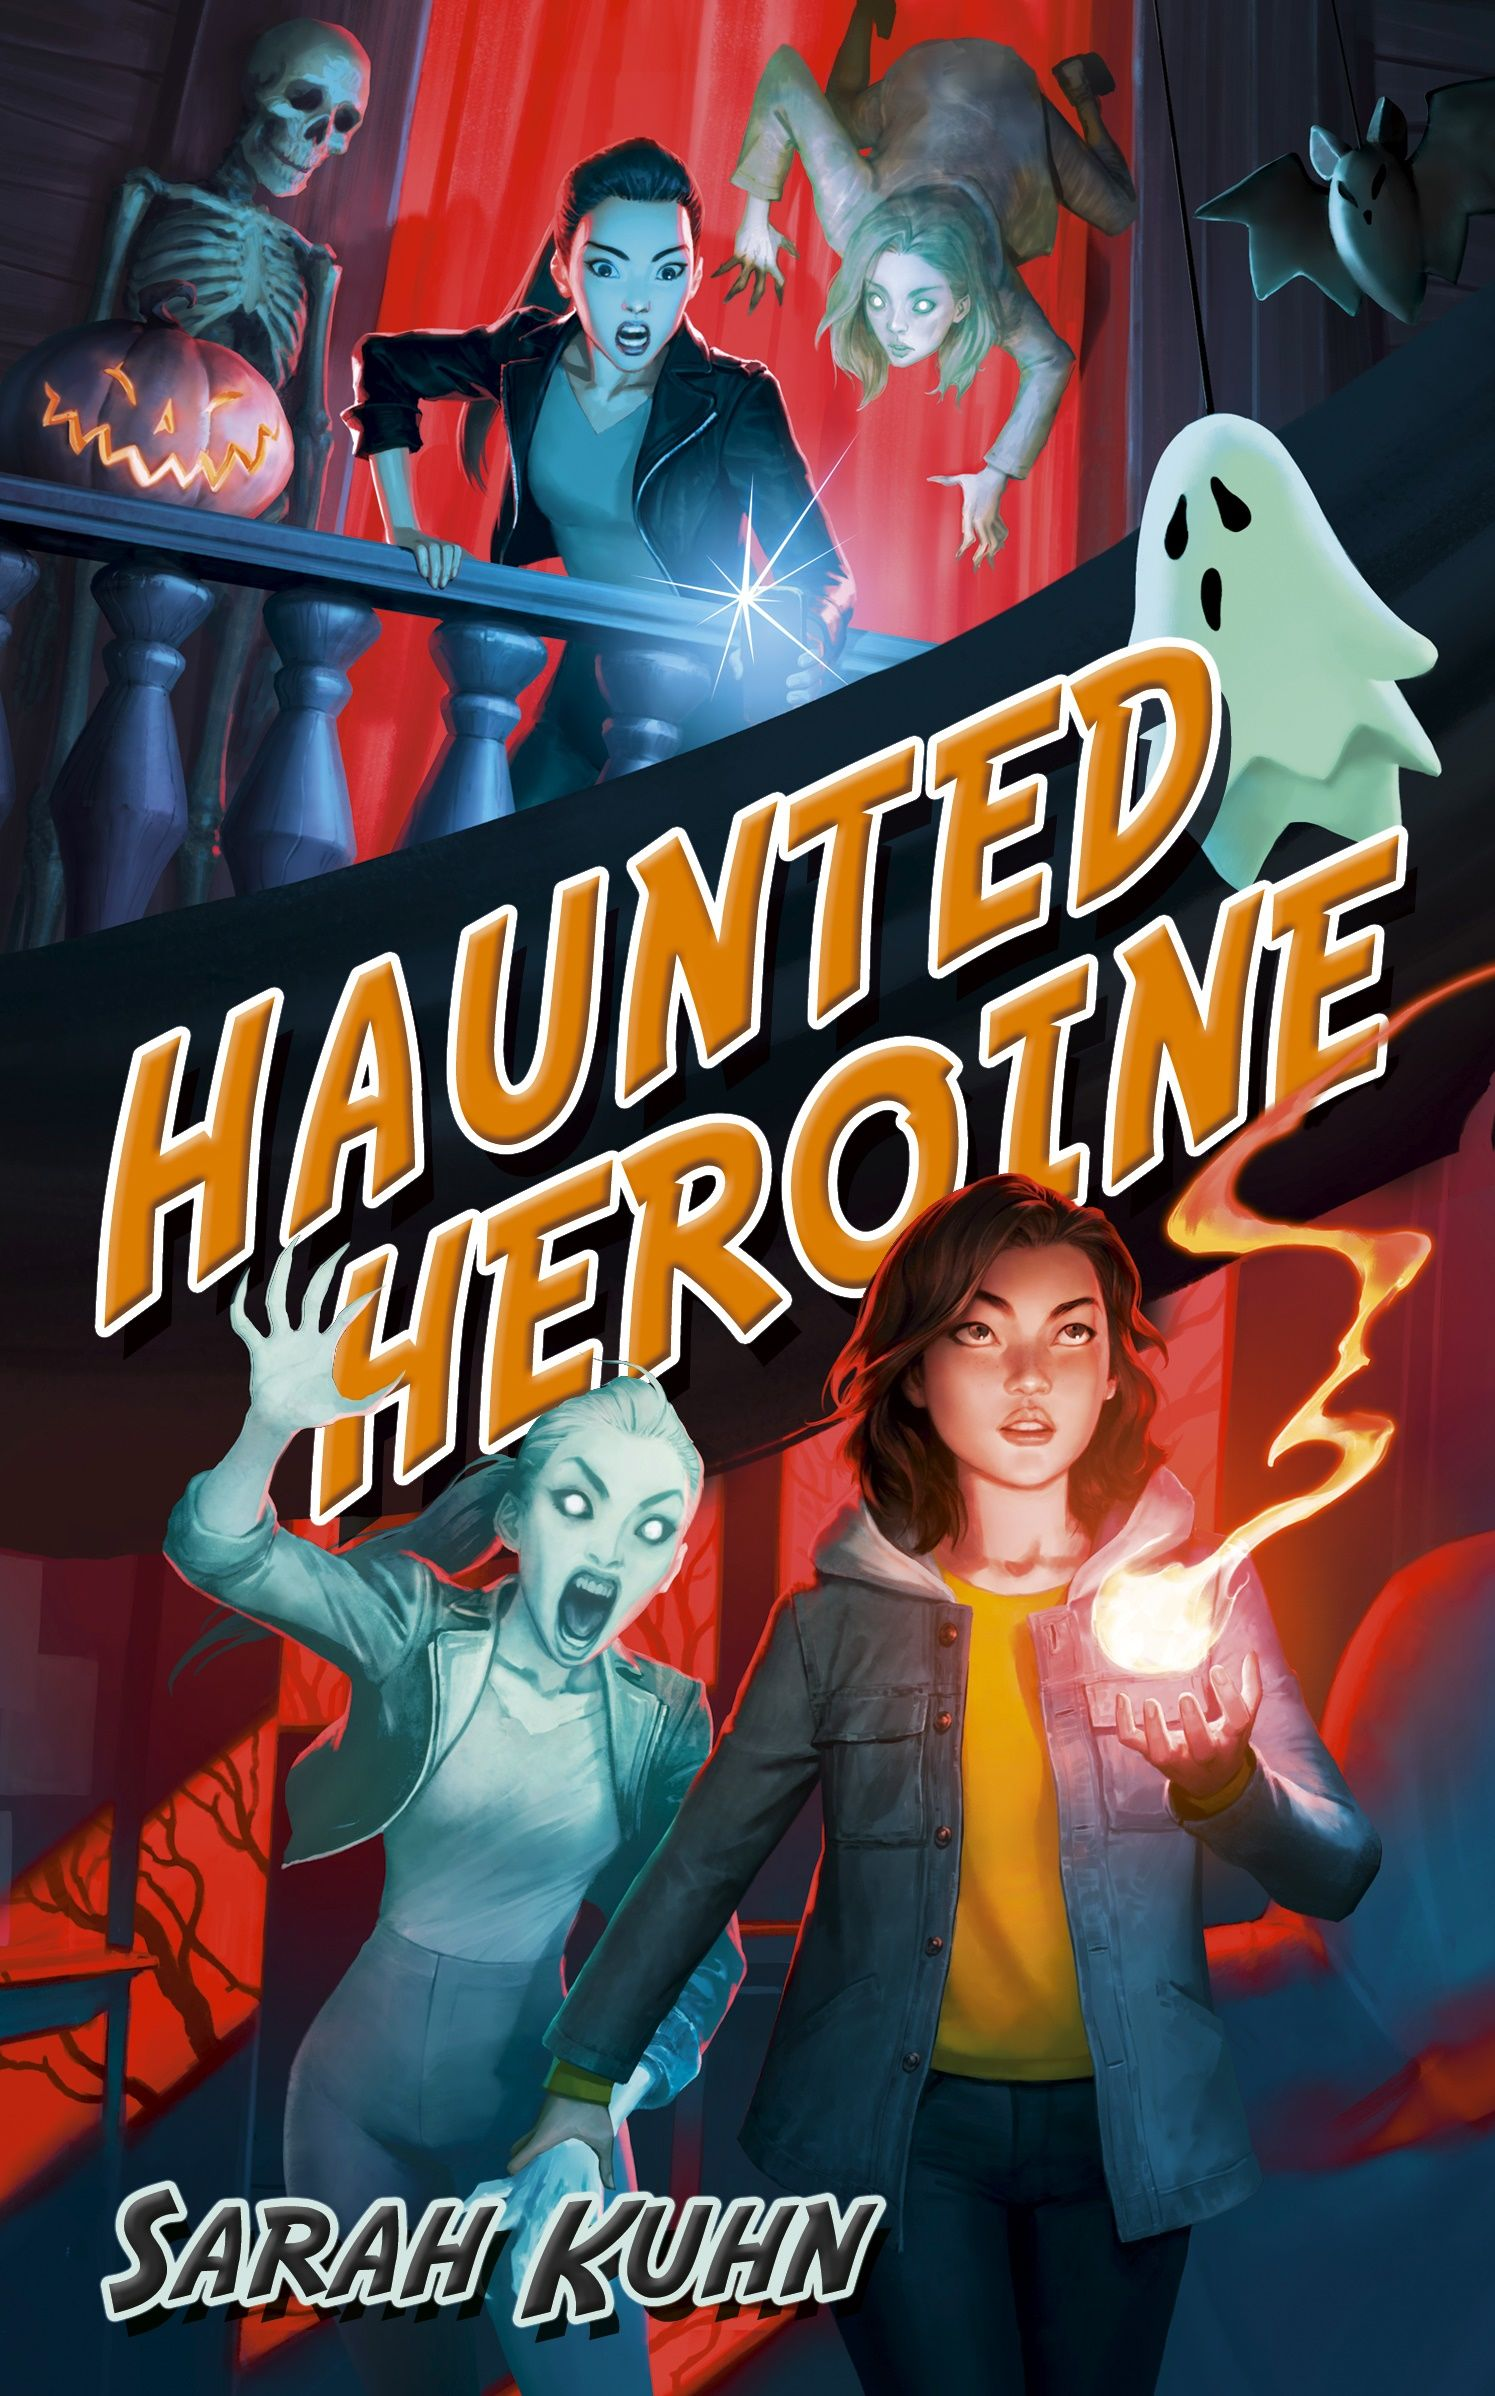 Exclusive: Sarah Kuhn reveals what's next for her superhero series with Haunted Heroine